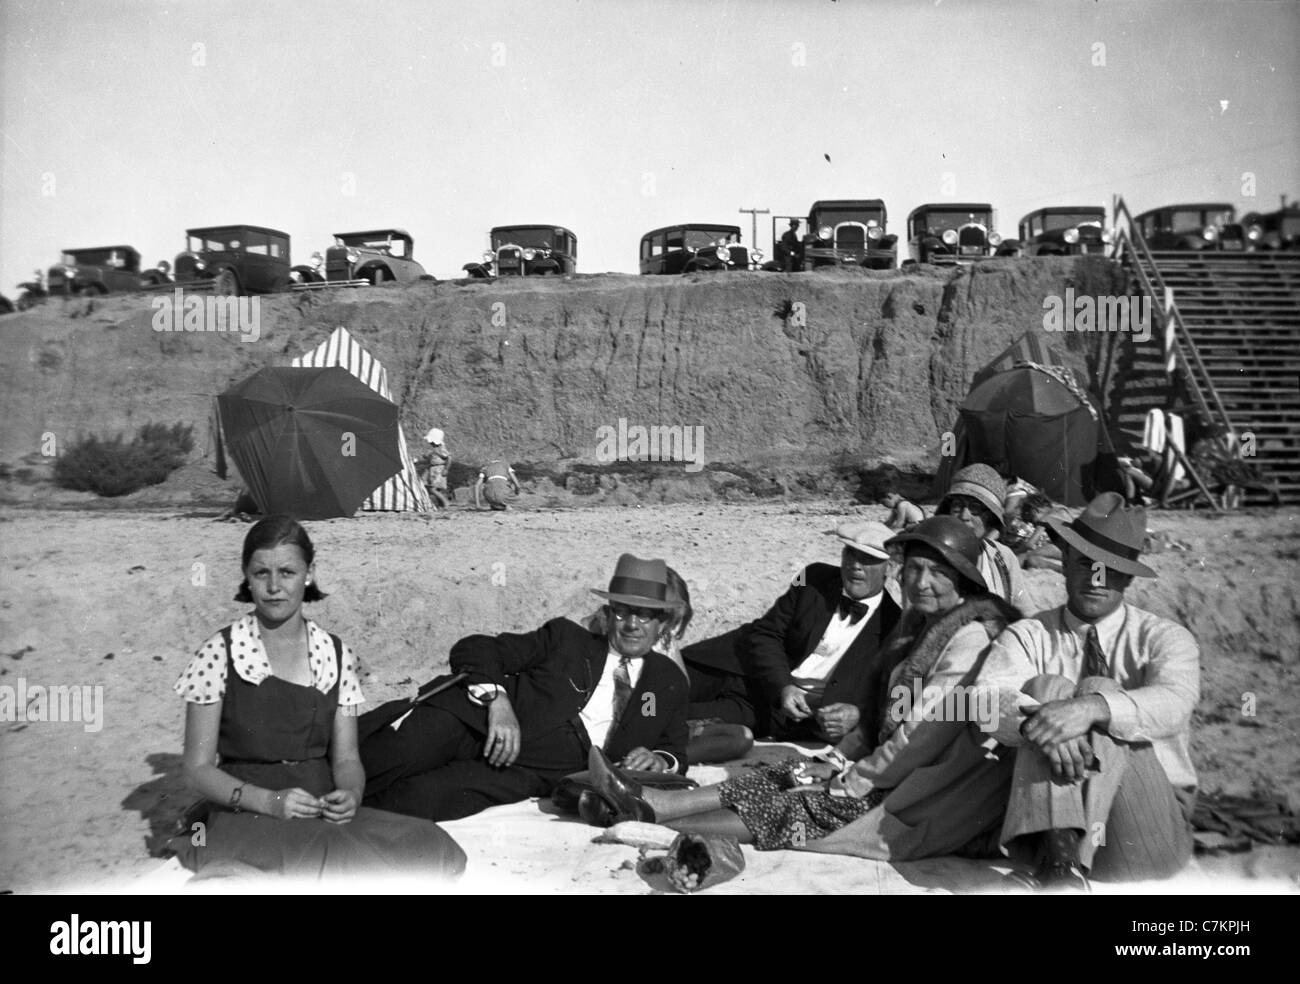 family and friends hanging out at southern california beach 1930s fashion group photo cars black and white - Stock Image